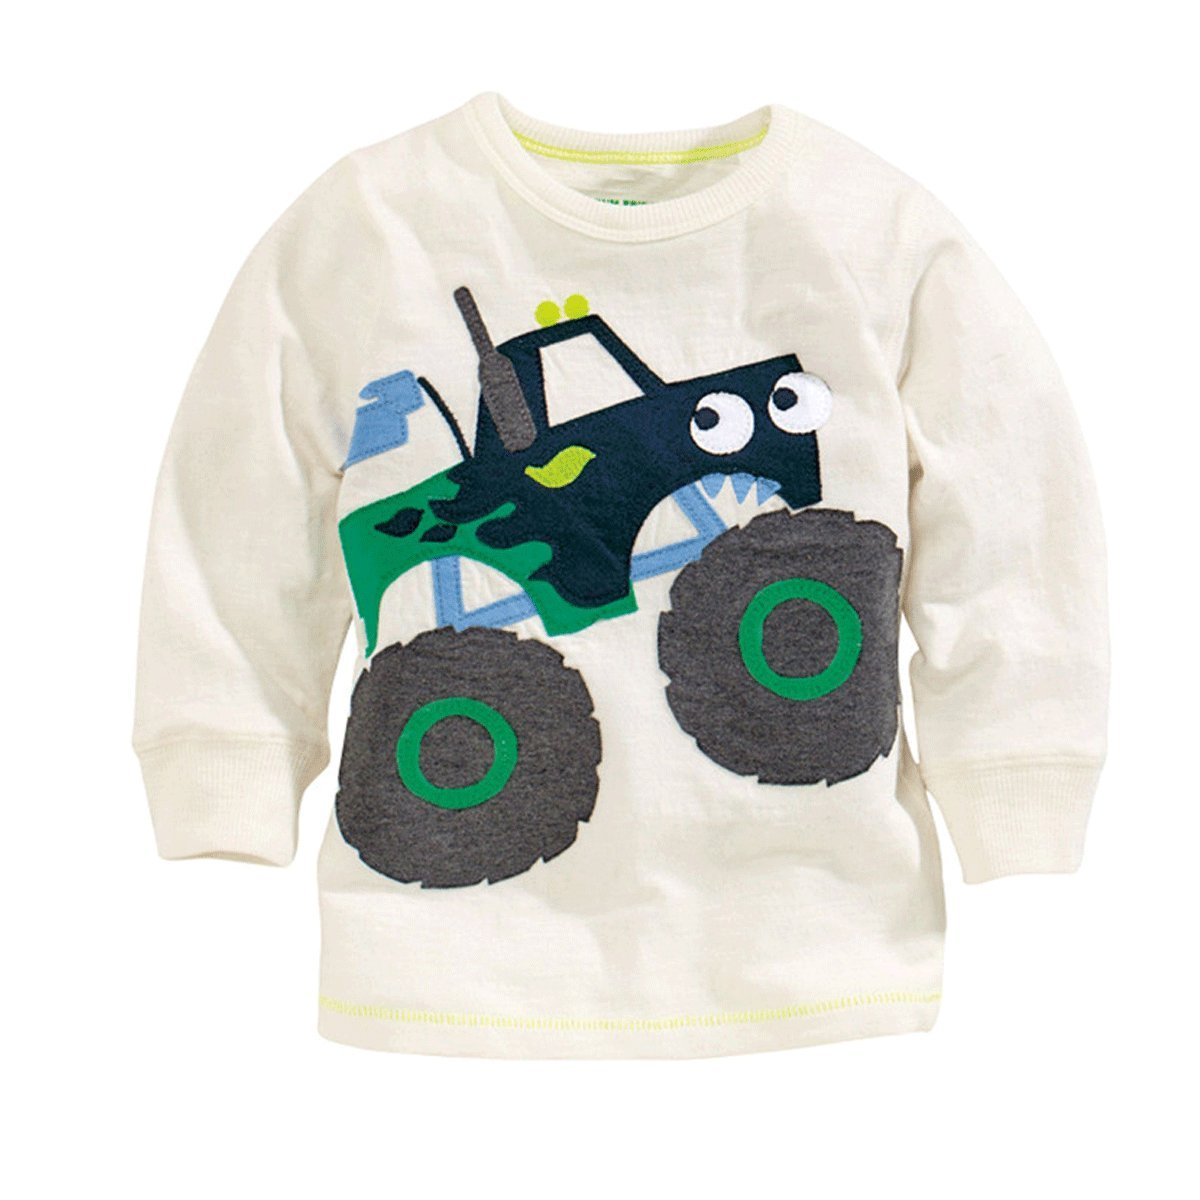 Mammybaby Baby Boy/Toddler/Kid's Long Sleeve T-Shirts Truck White Size 4T by Mammybaby